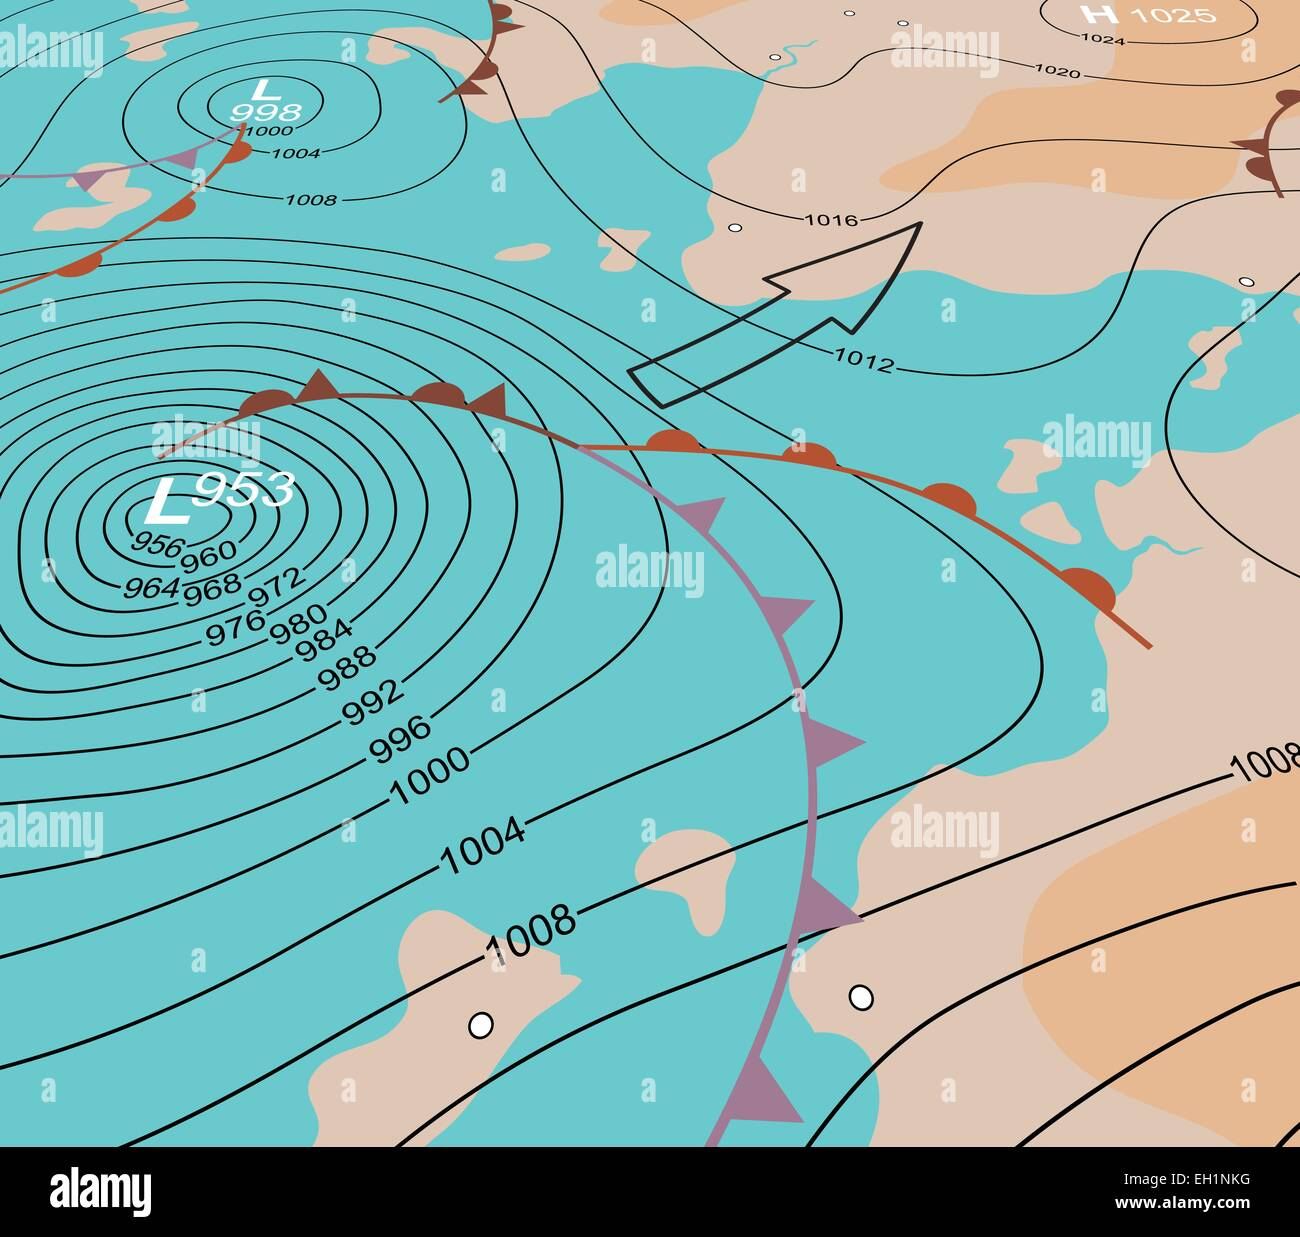 Editable vector illustration of an angled generic weather map showing a storm depression - Stock Image